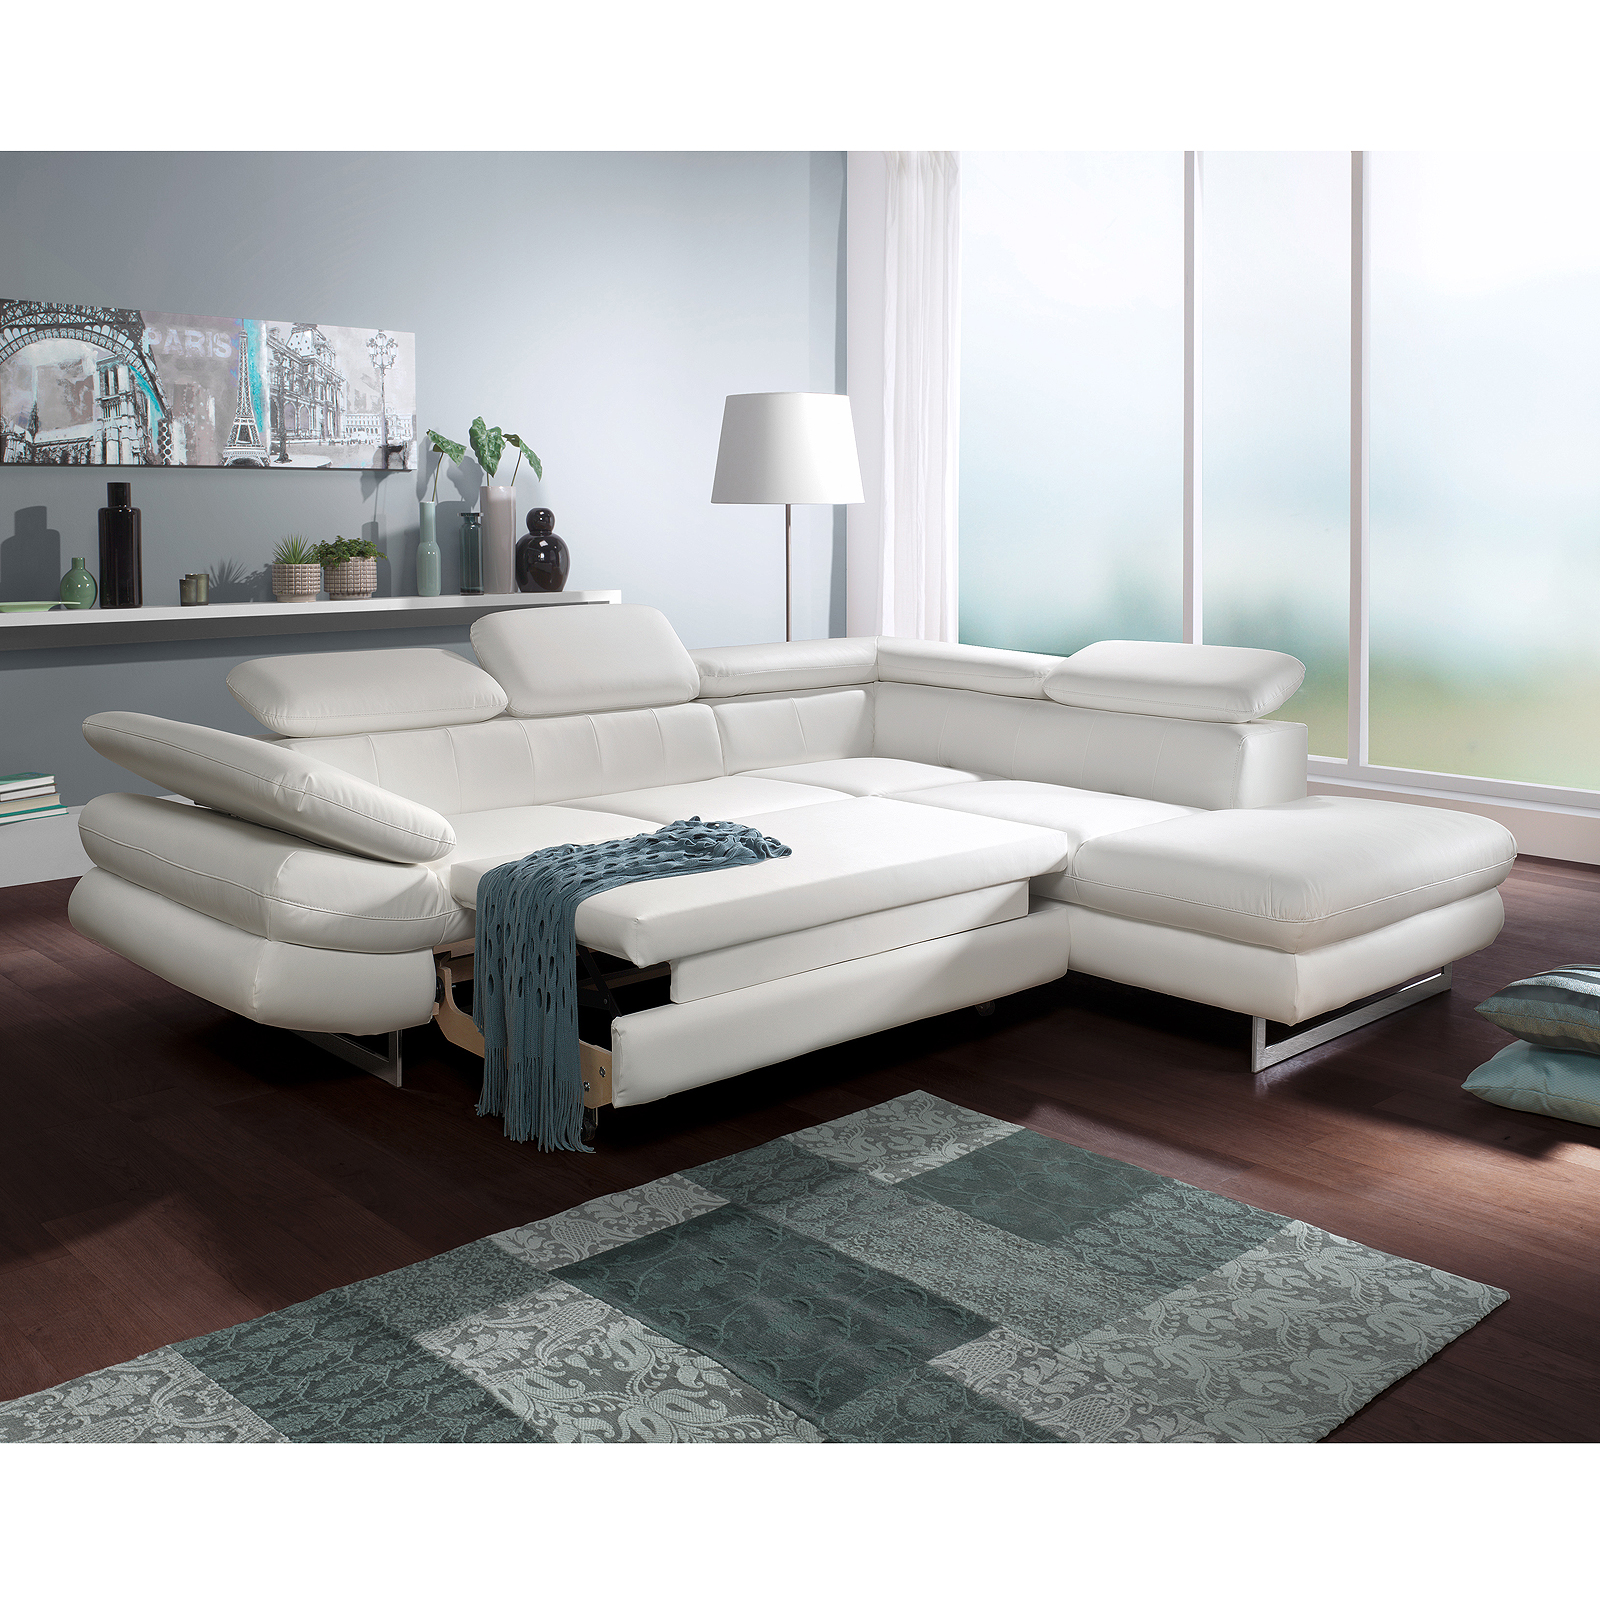 Ecksofa solution sofa wohnlandschaft in wei mit funktions for Funktions ecksofa